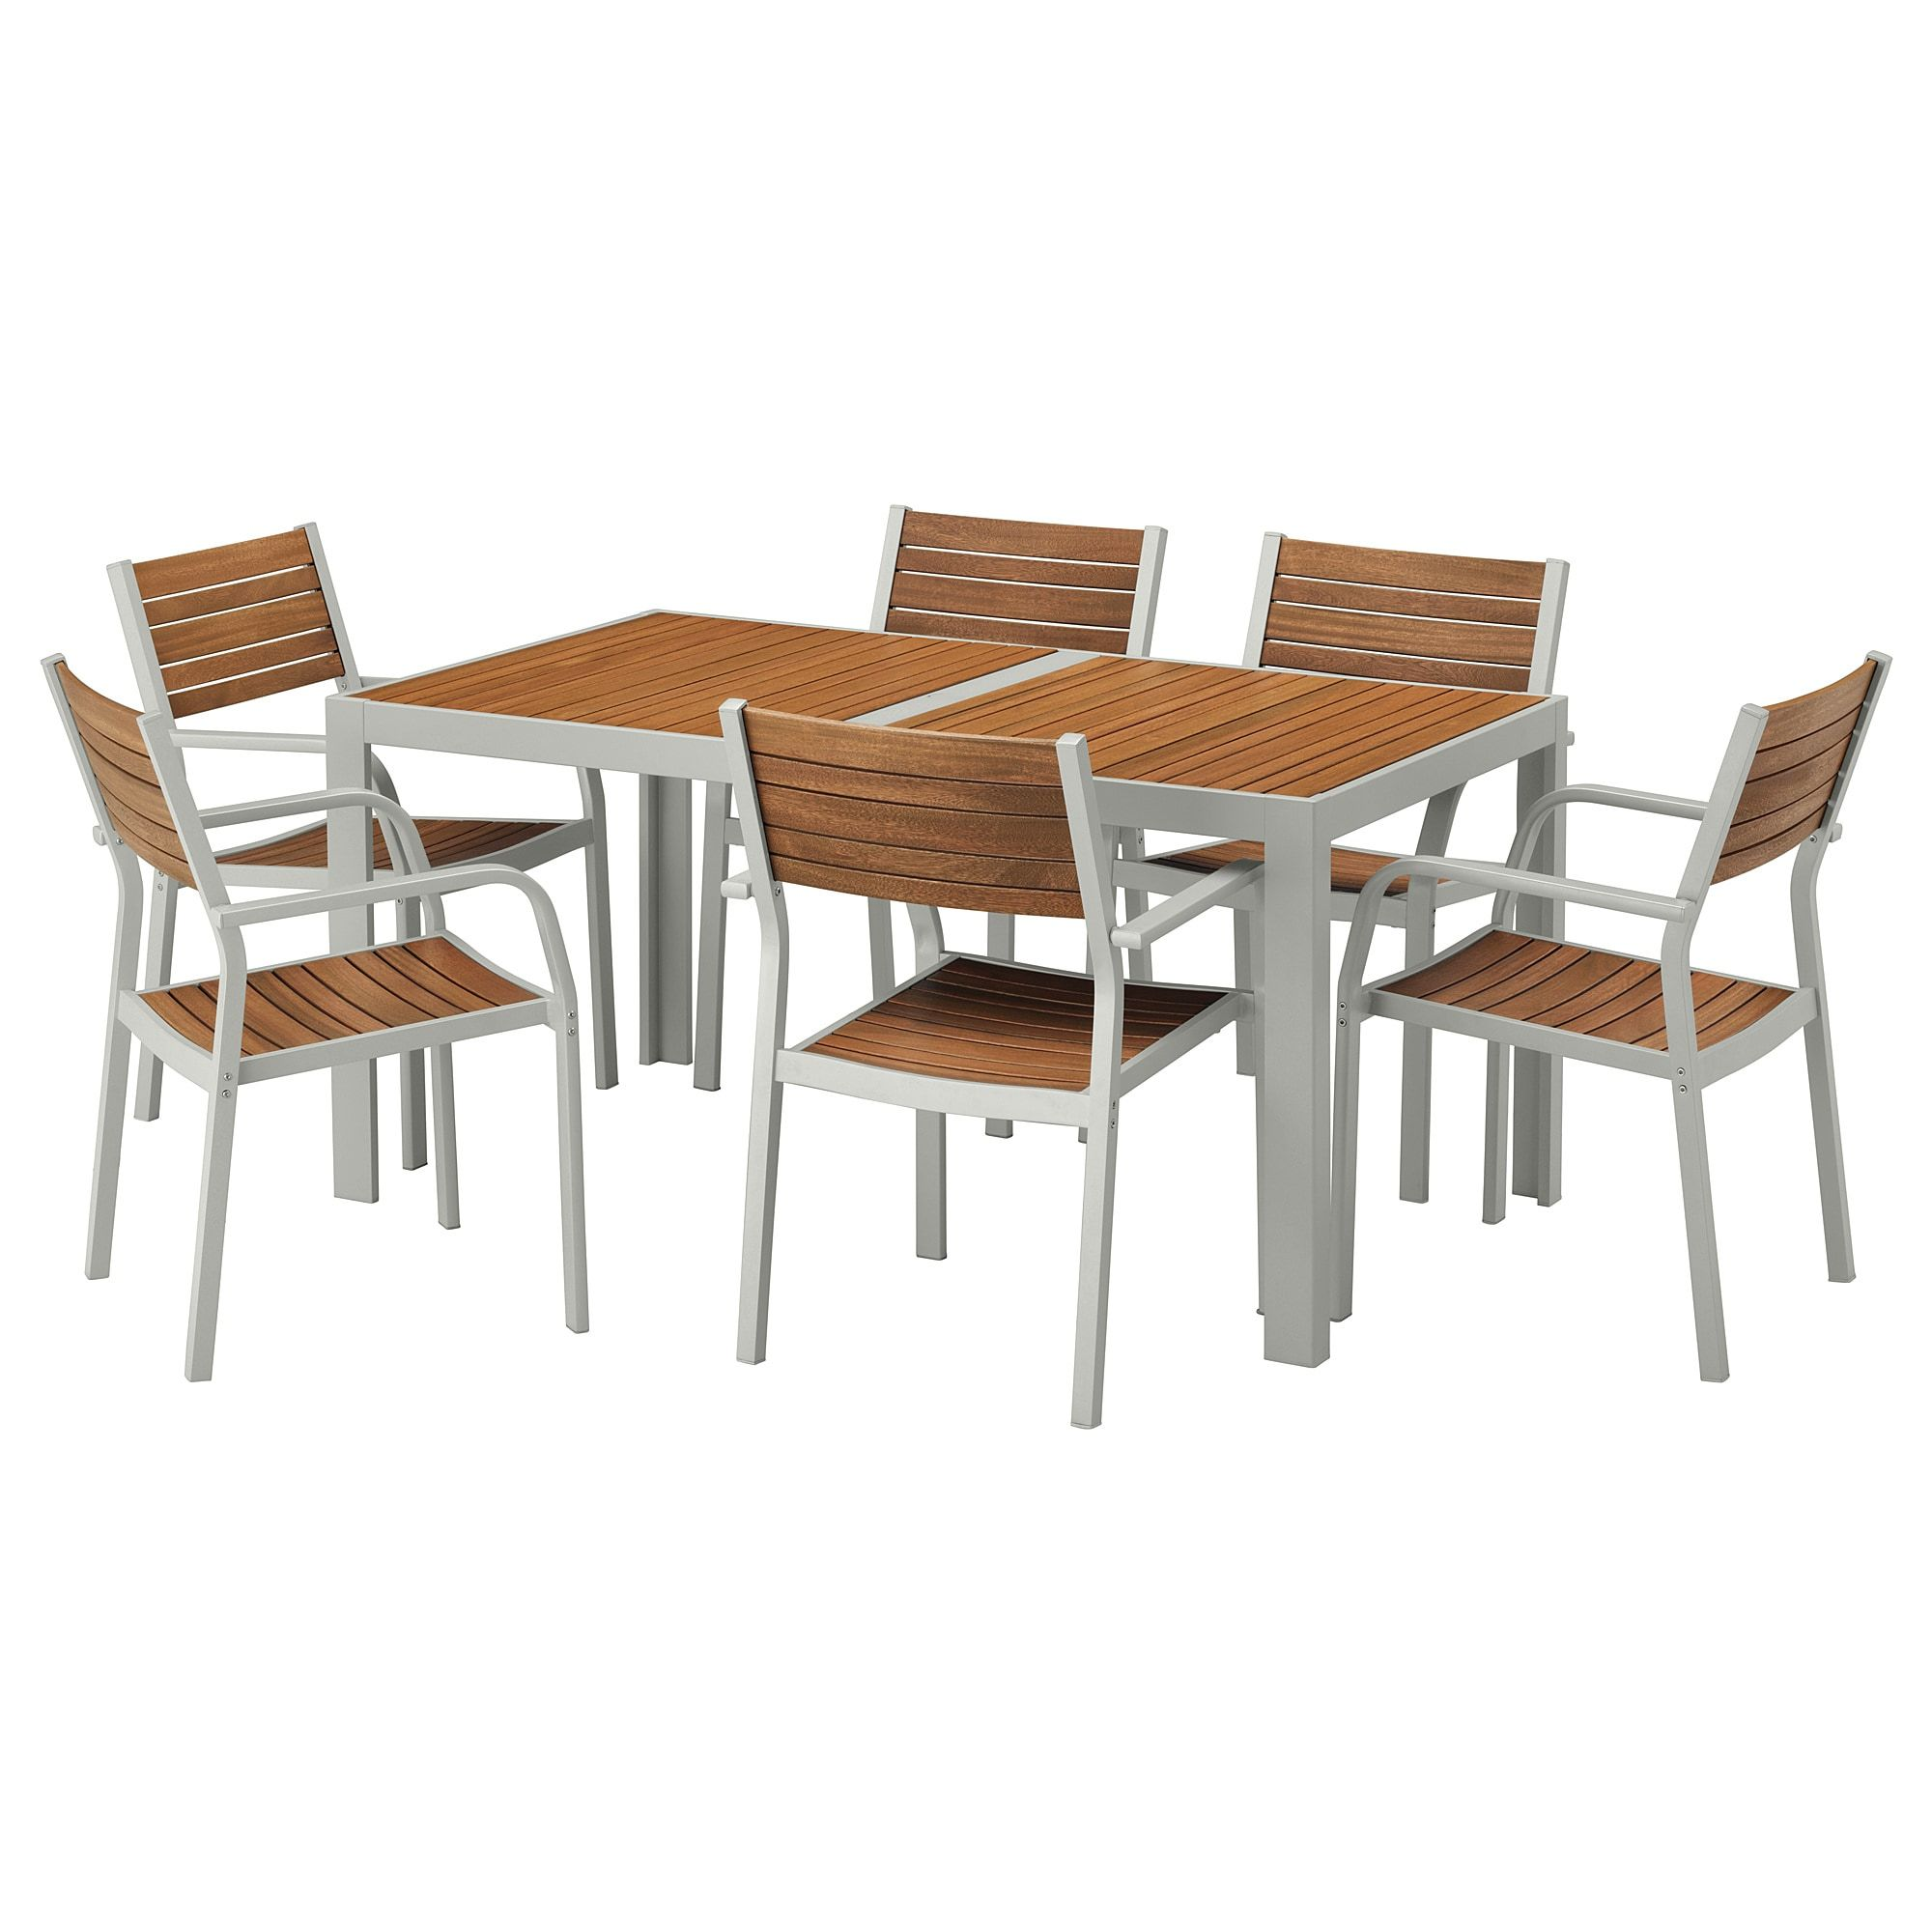 Sjalland Outdoor Dining Sets Ikea Outdoor Dining Furniture Wooden Outdoor Furniture Ikea Dining Table